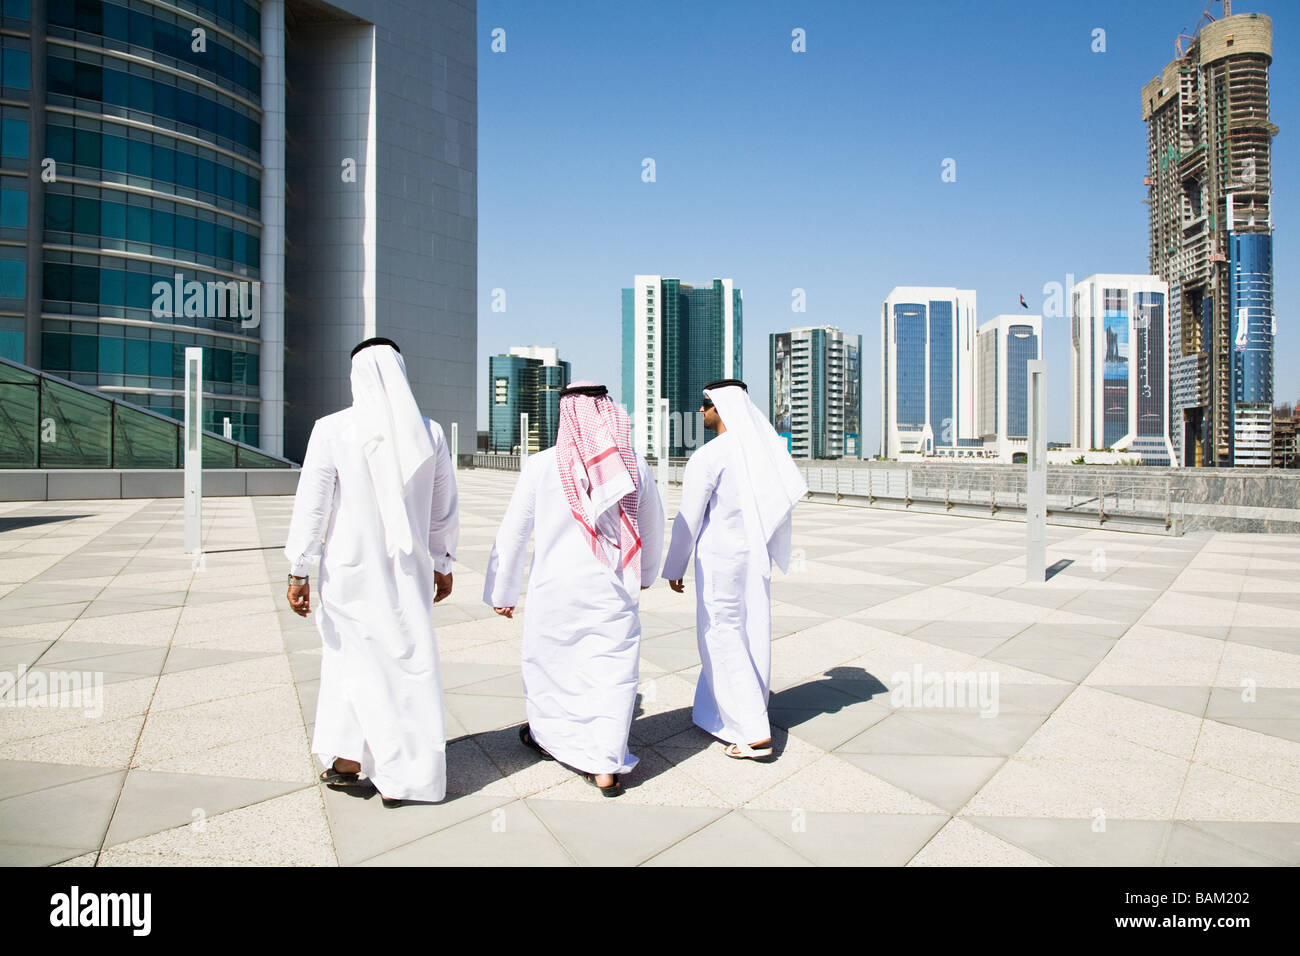 Rear view of middle eastern businessmen - Stock Image